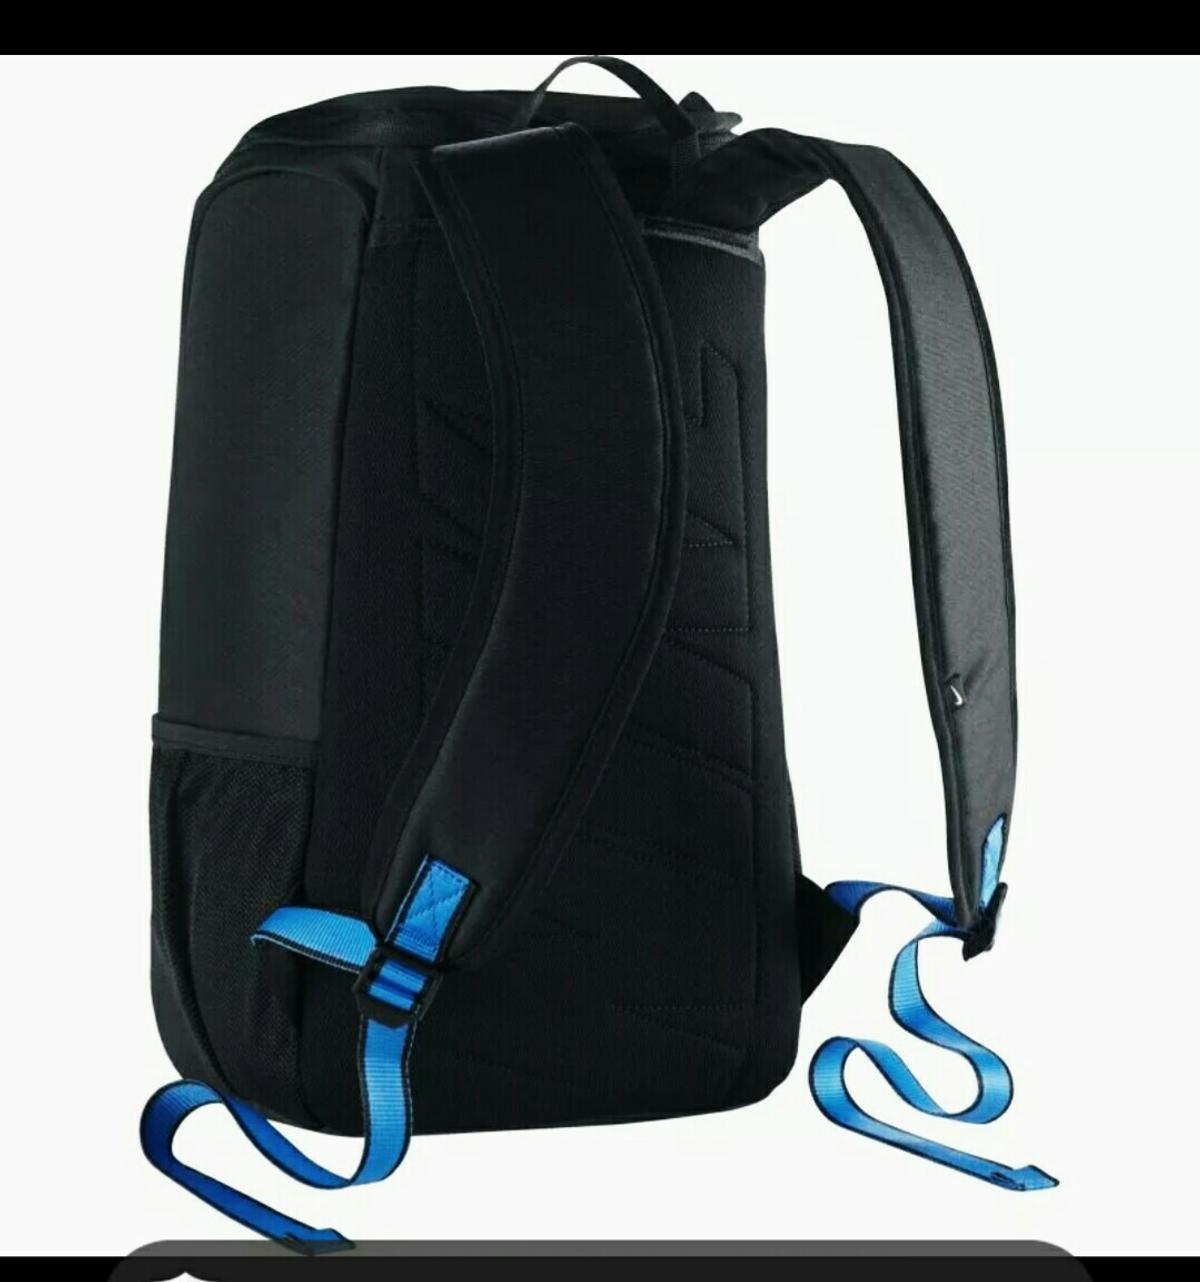 e7874e0be8224 NIKE SOCCER FB SHIELD COMPACT BACKPACK NEW. in B75 Birmingham for ...